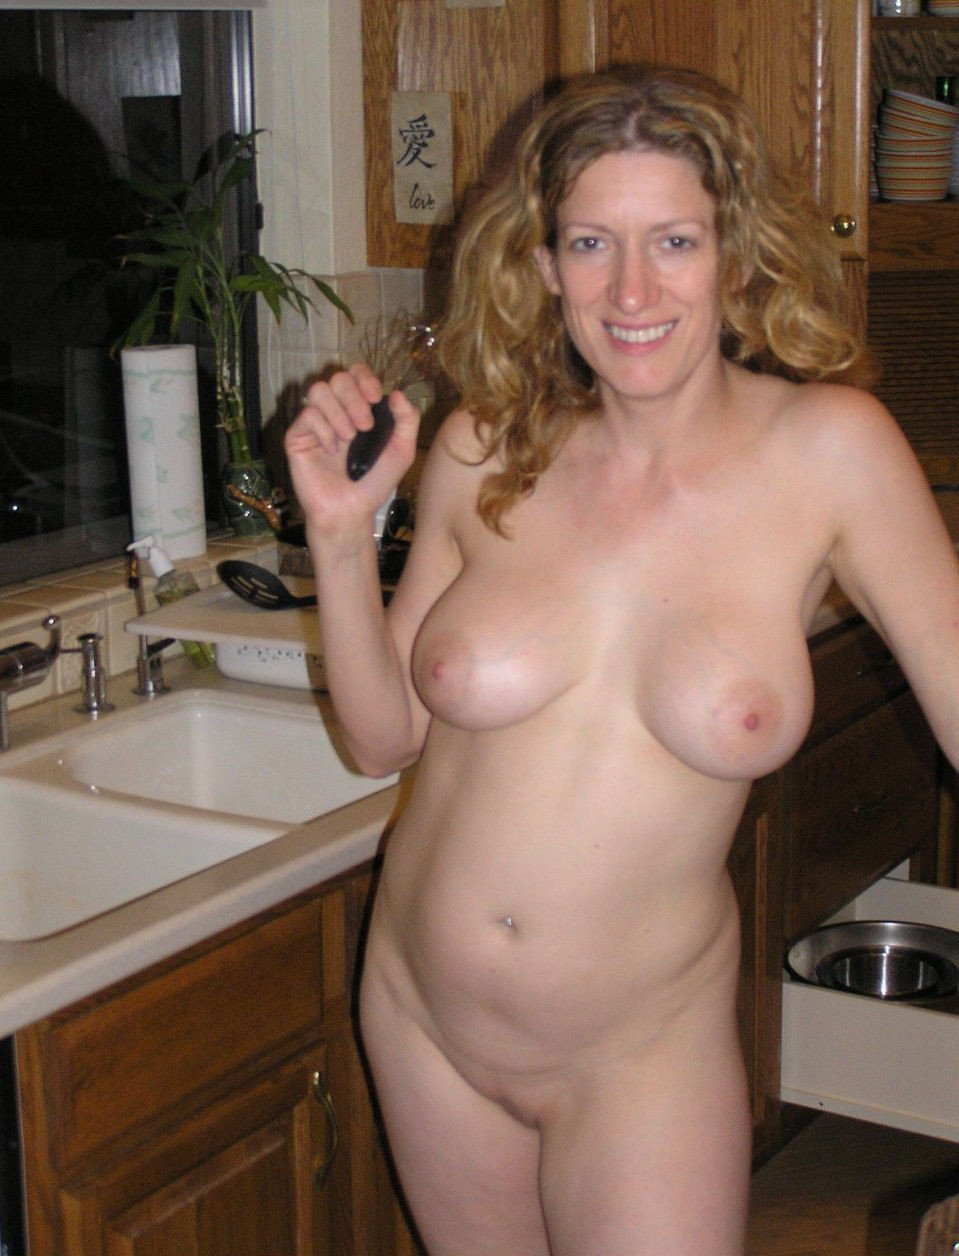 Linda and brandon kansas swingers